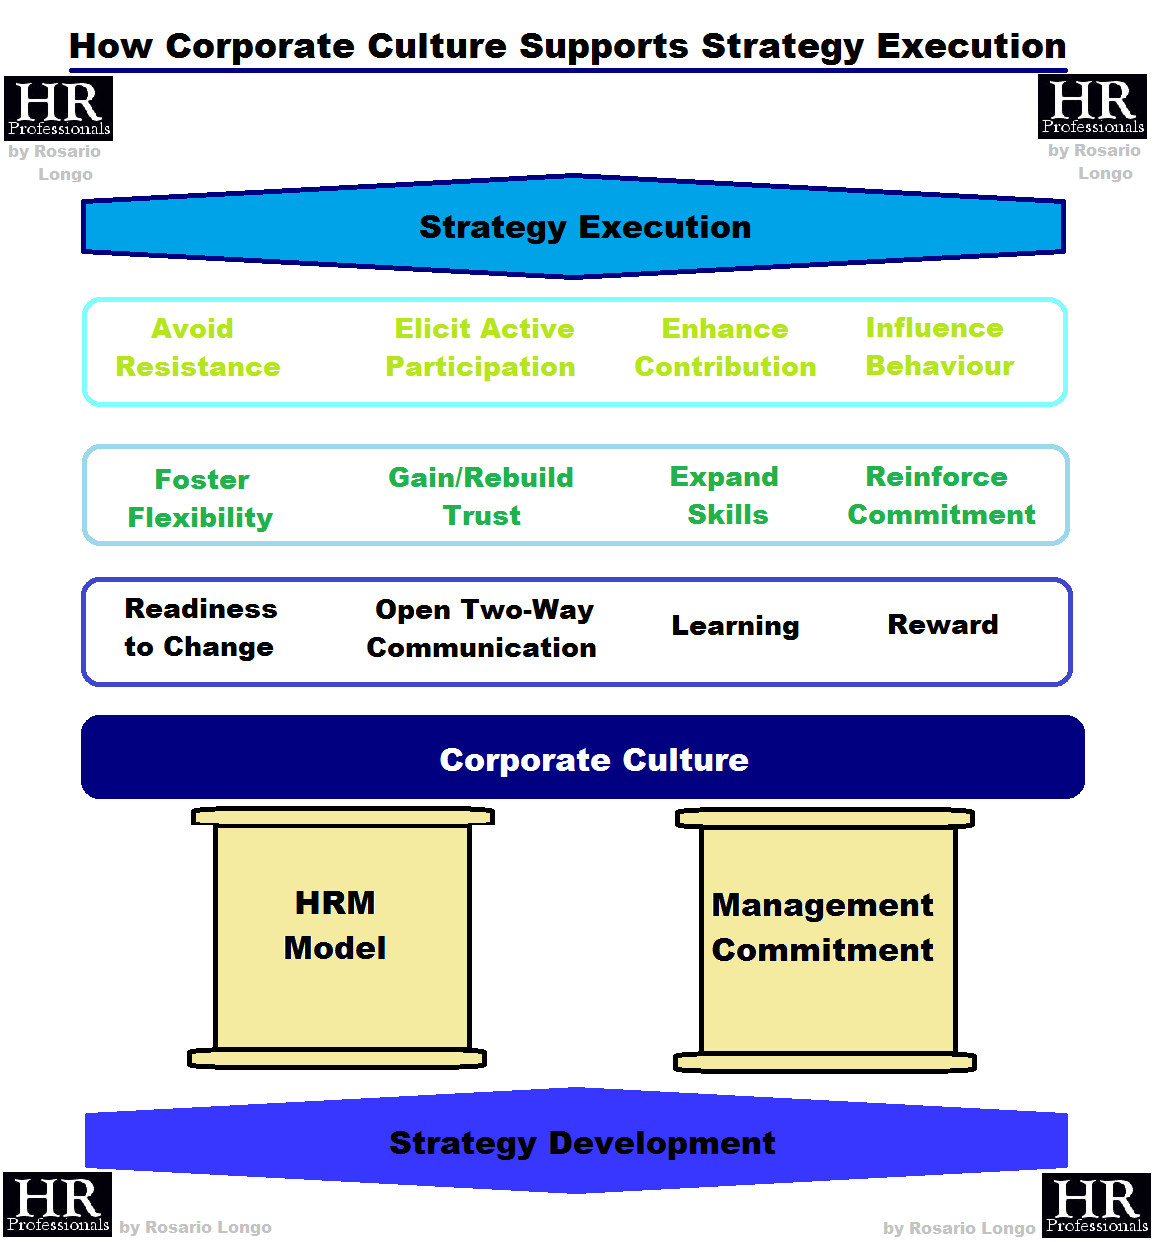 corporate culture and strategy implementation The pervasiveness of an organization's culture requires that management recognize underlying dimensions of their corporate culture and its impact on employee-related variables such as satisfaction, commitment, cohesion, strategy implementation, performance, among others (daulatrum b lund, 2003.